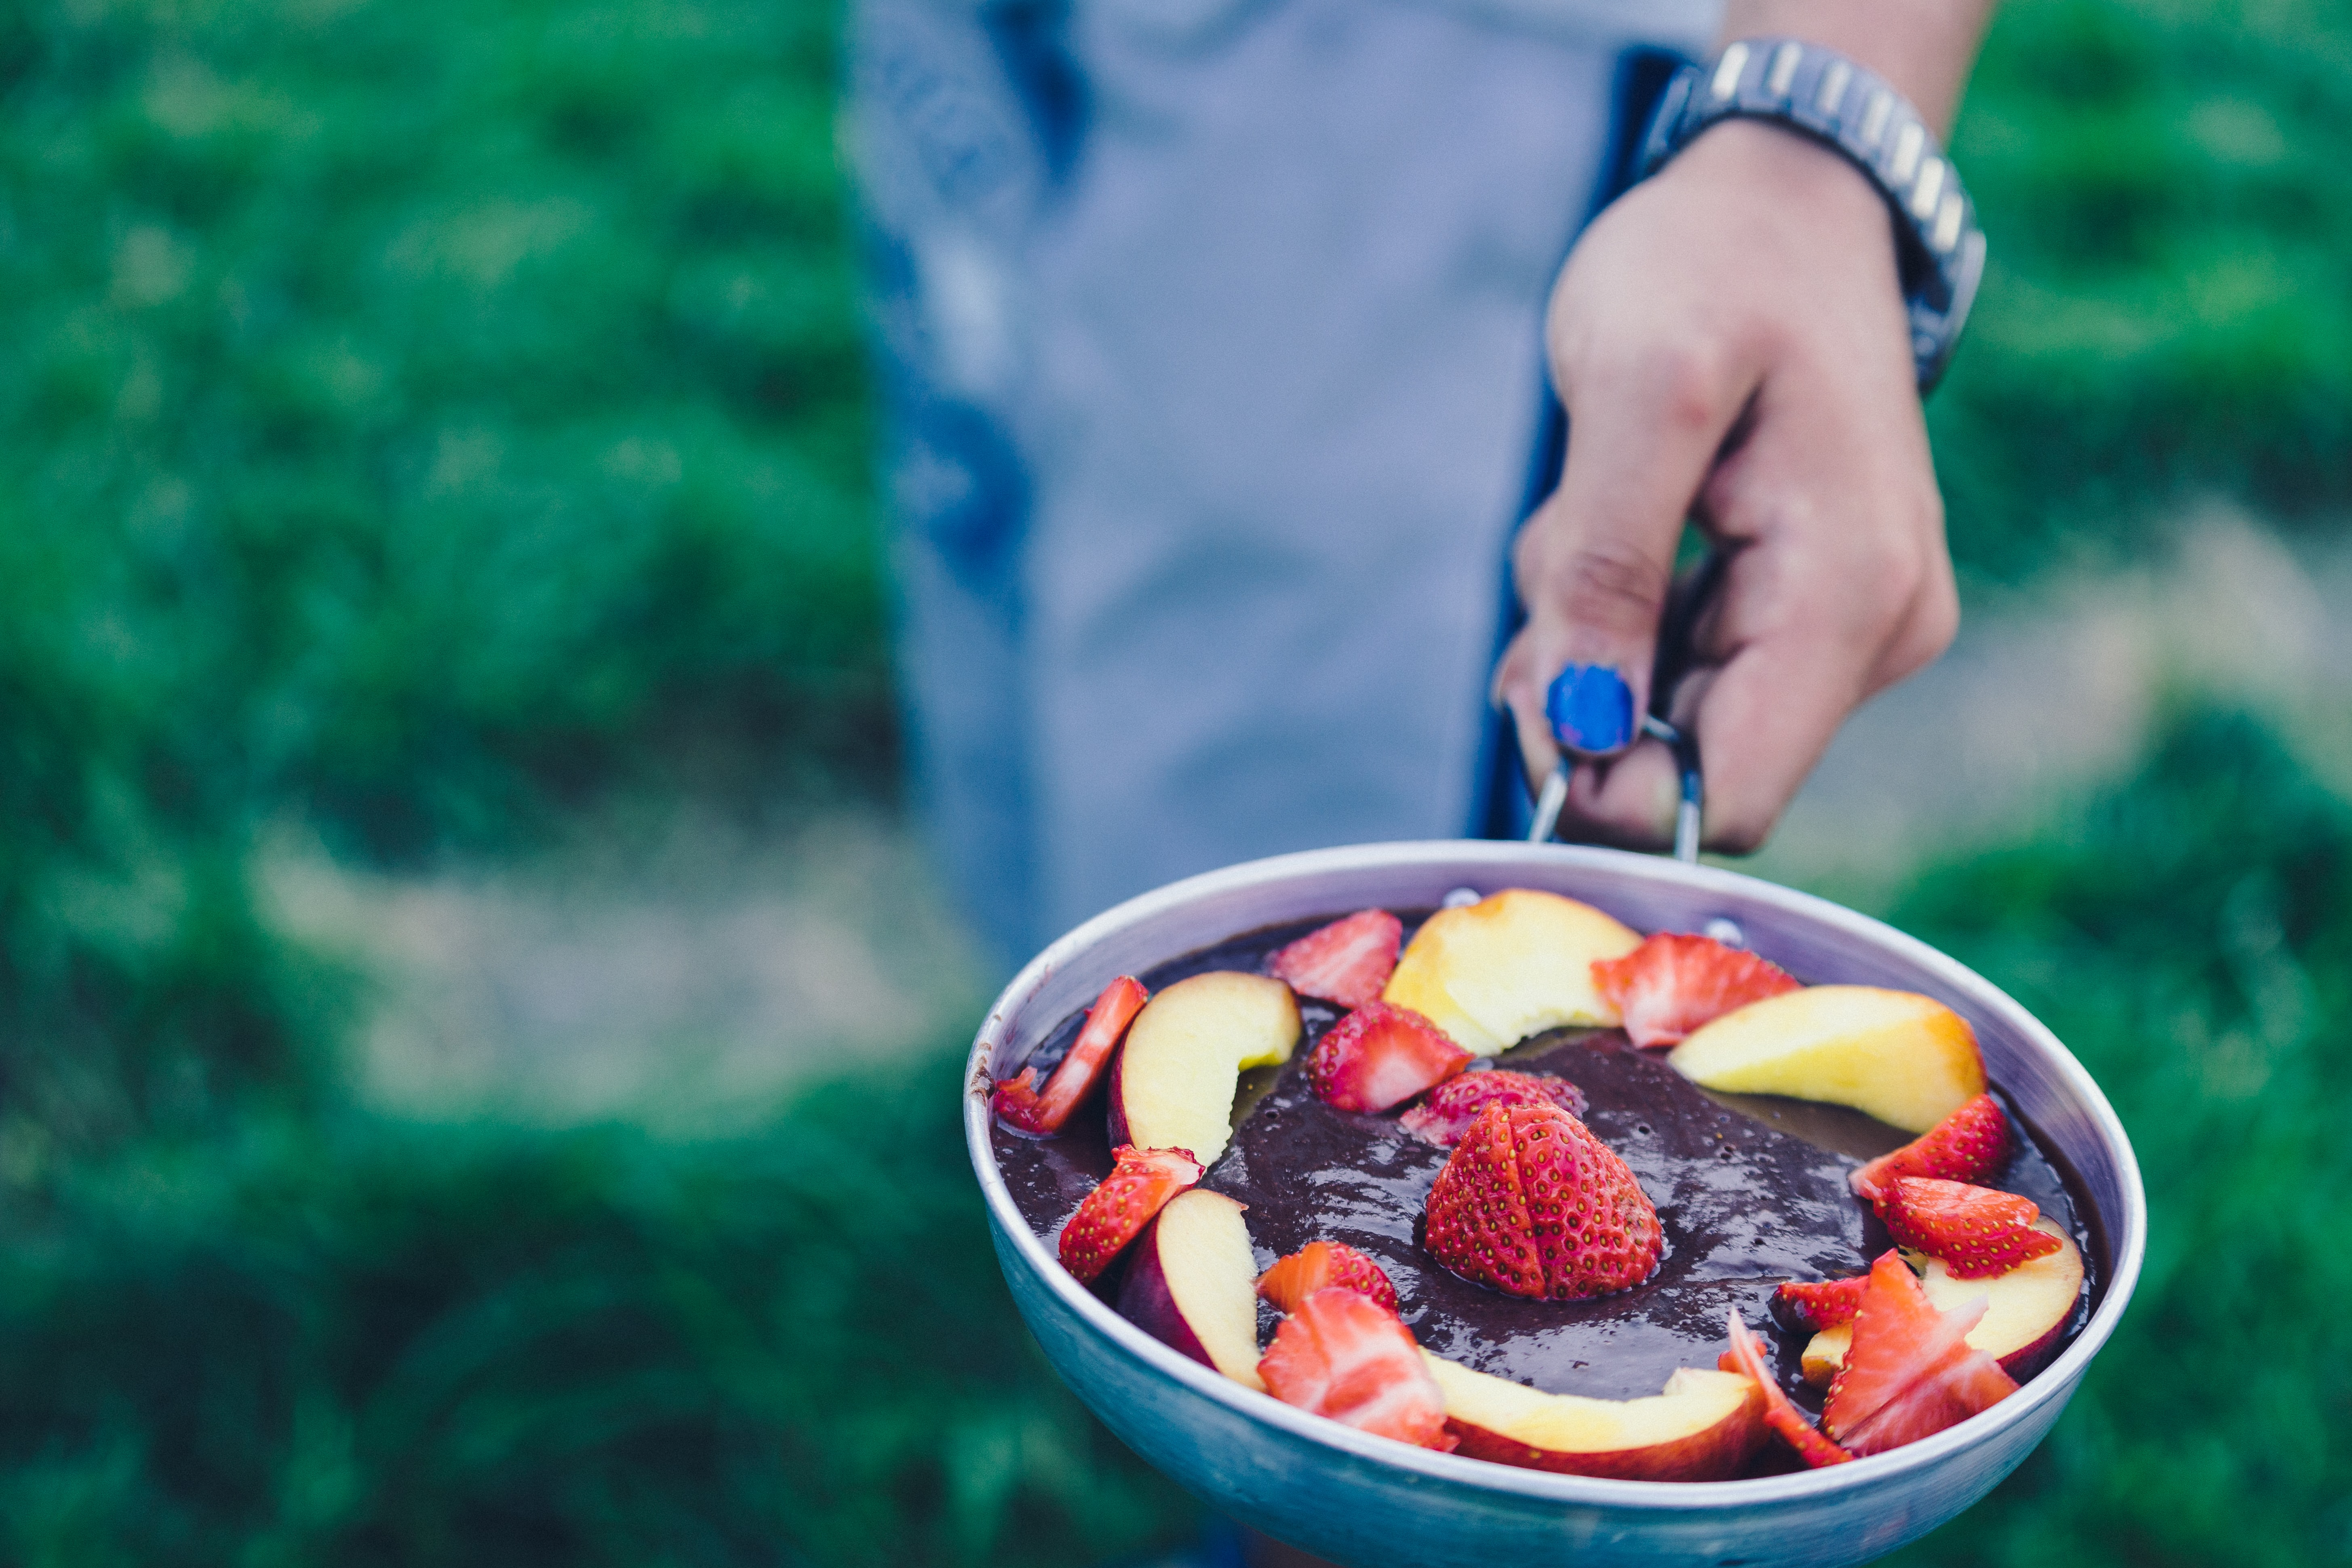 person holding pan filled with sliced strawberries